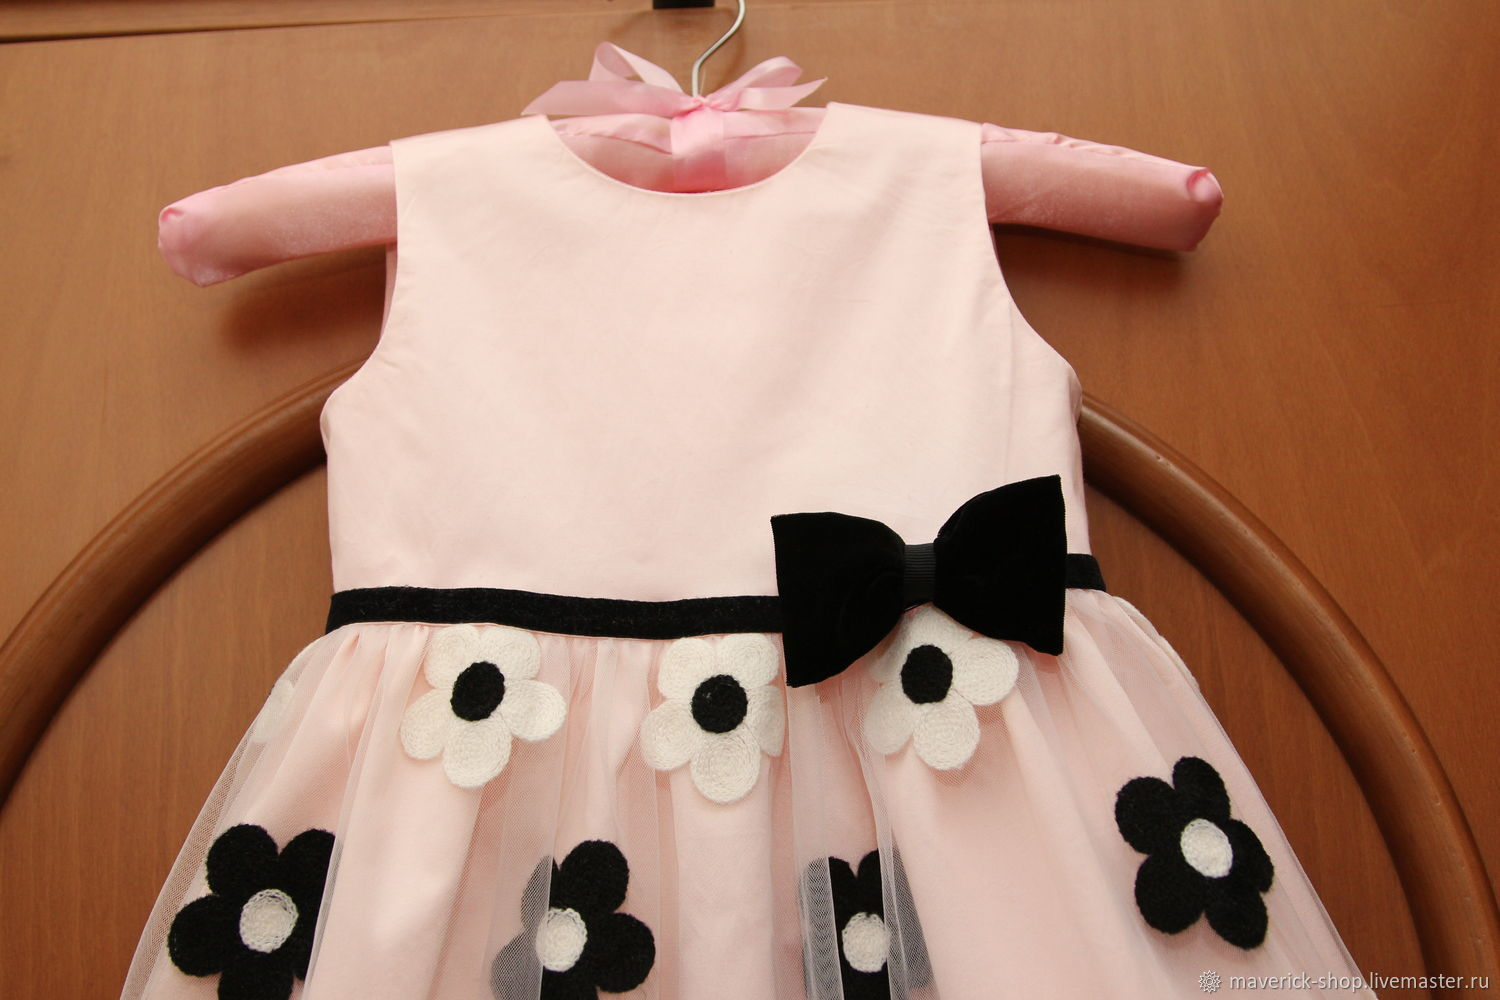 Pink Dressy Dress For Girl With Black And White Flowers Shop